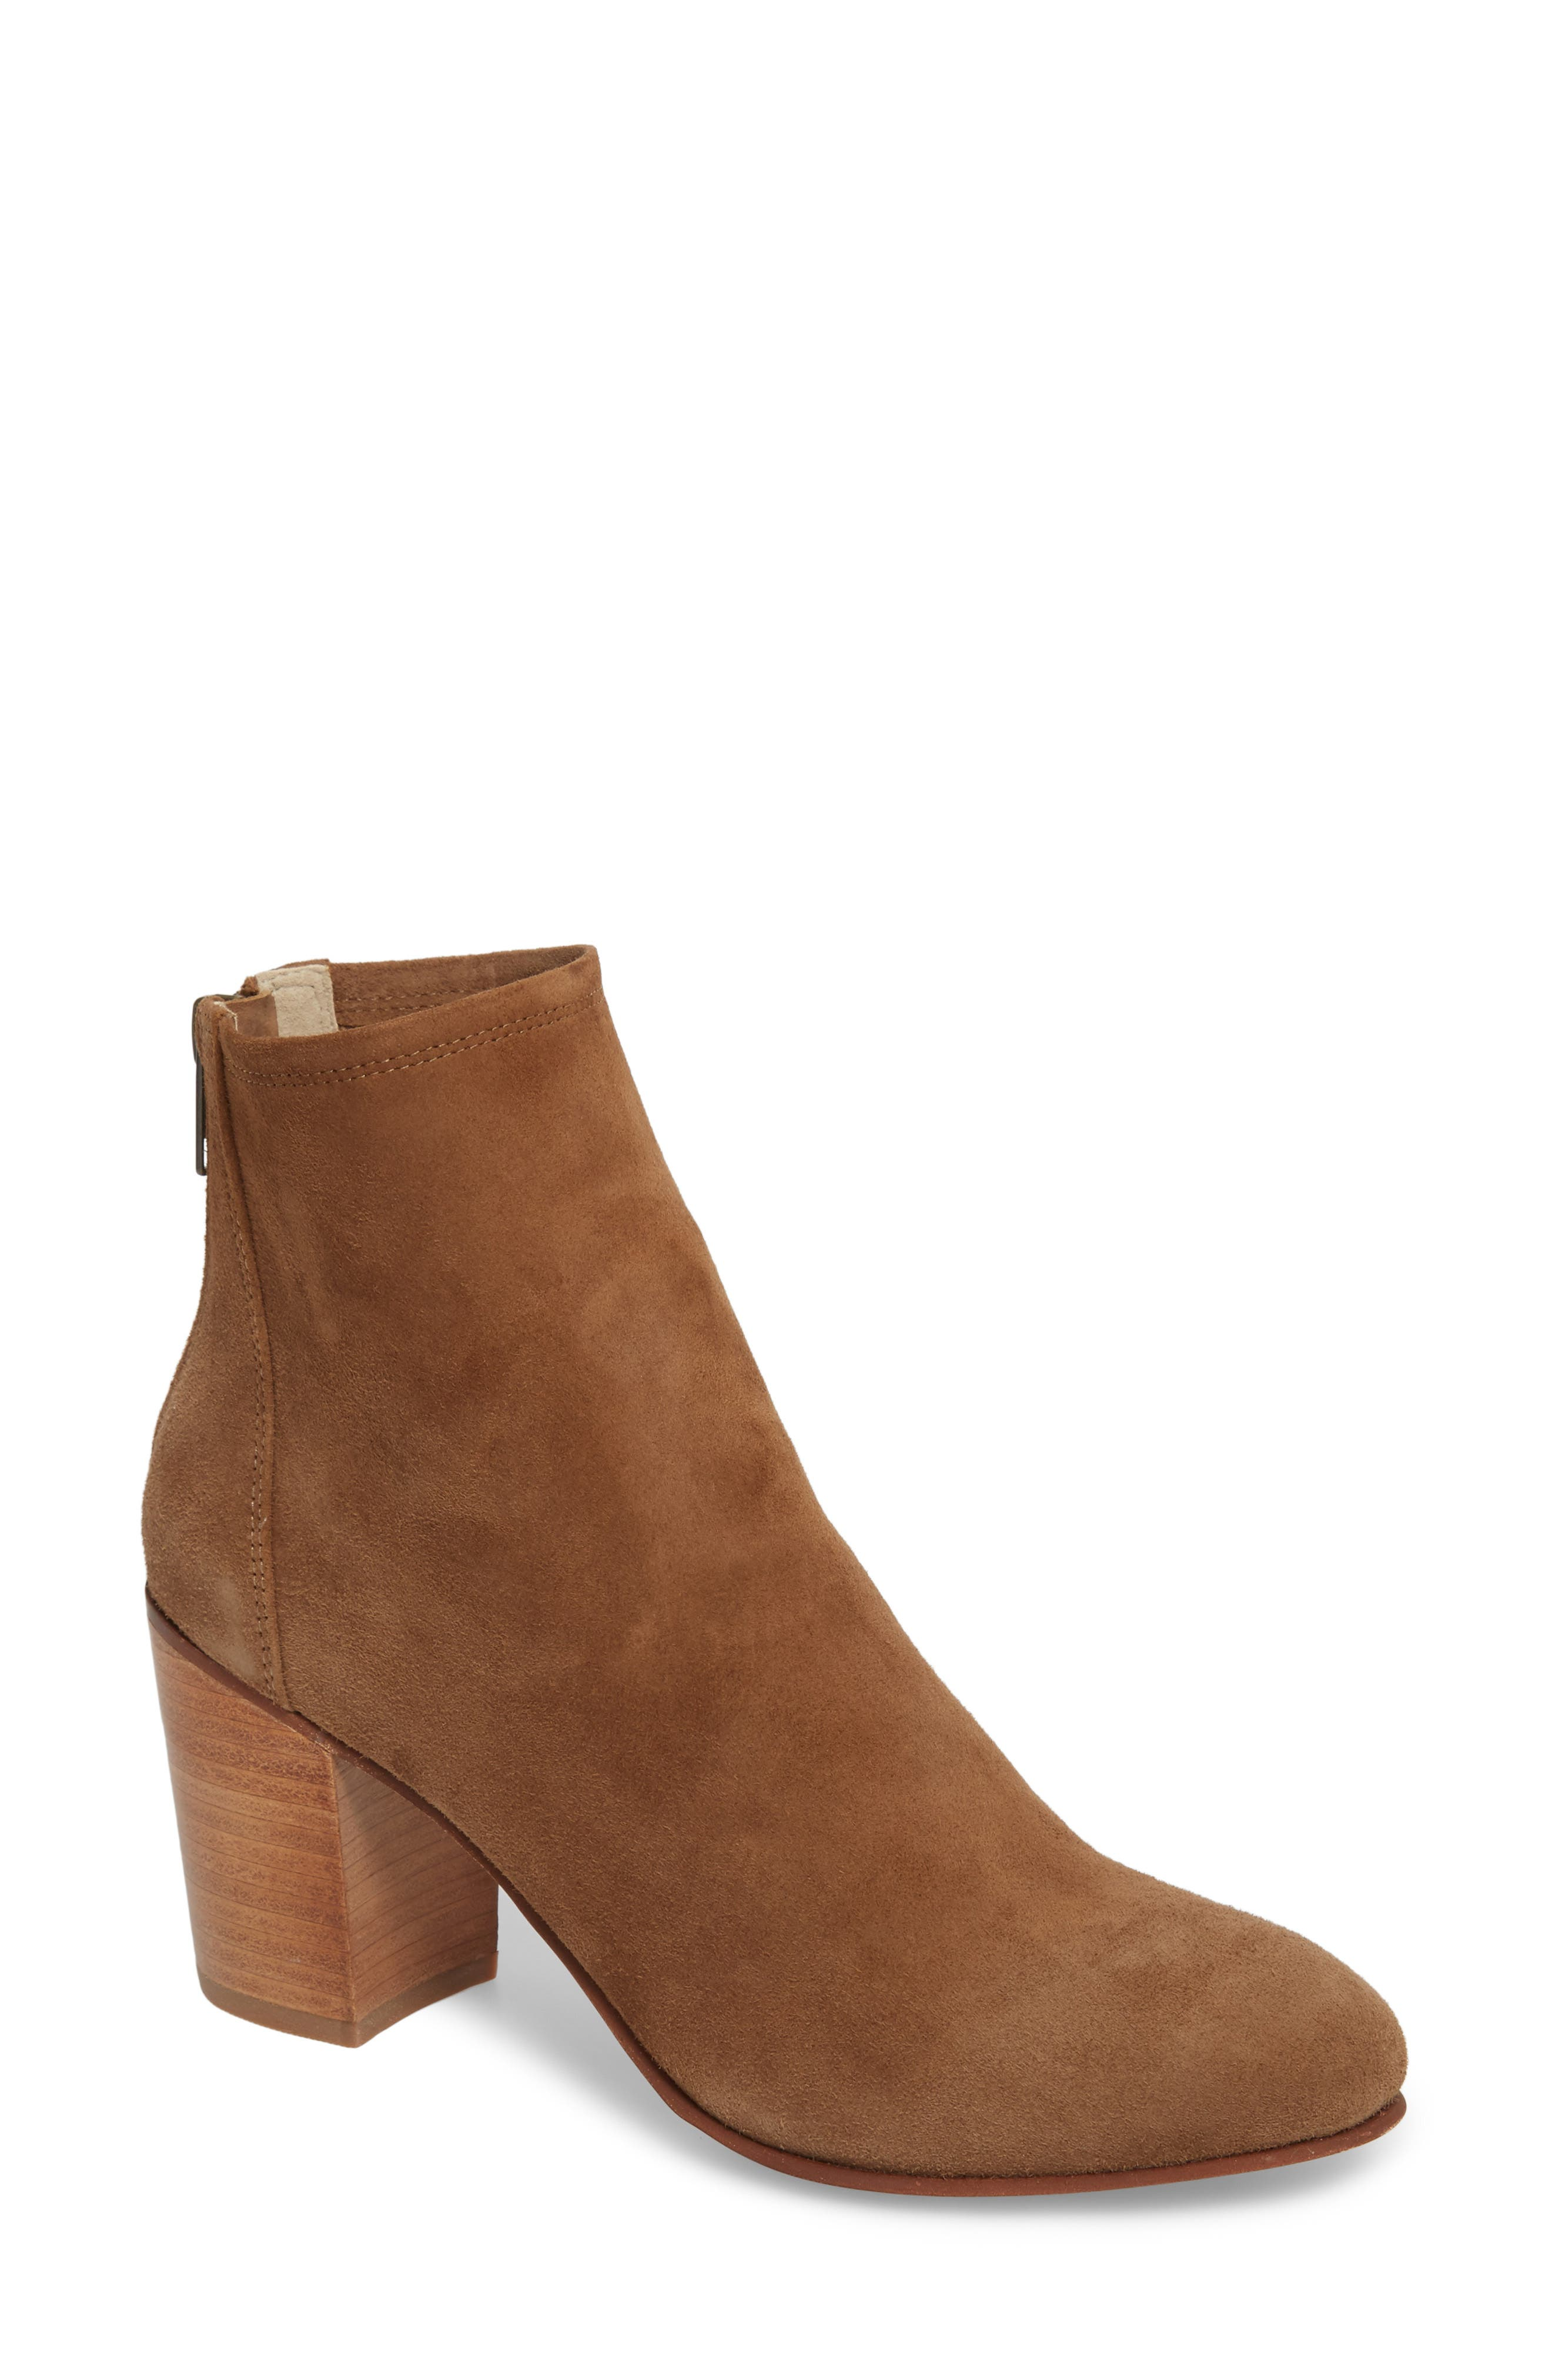 Tawny Bootie,                             Main thumbnail 1, color,                             Khaki Suede